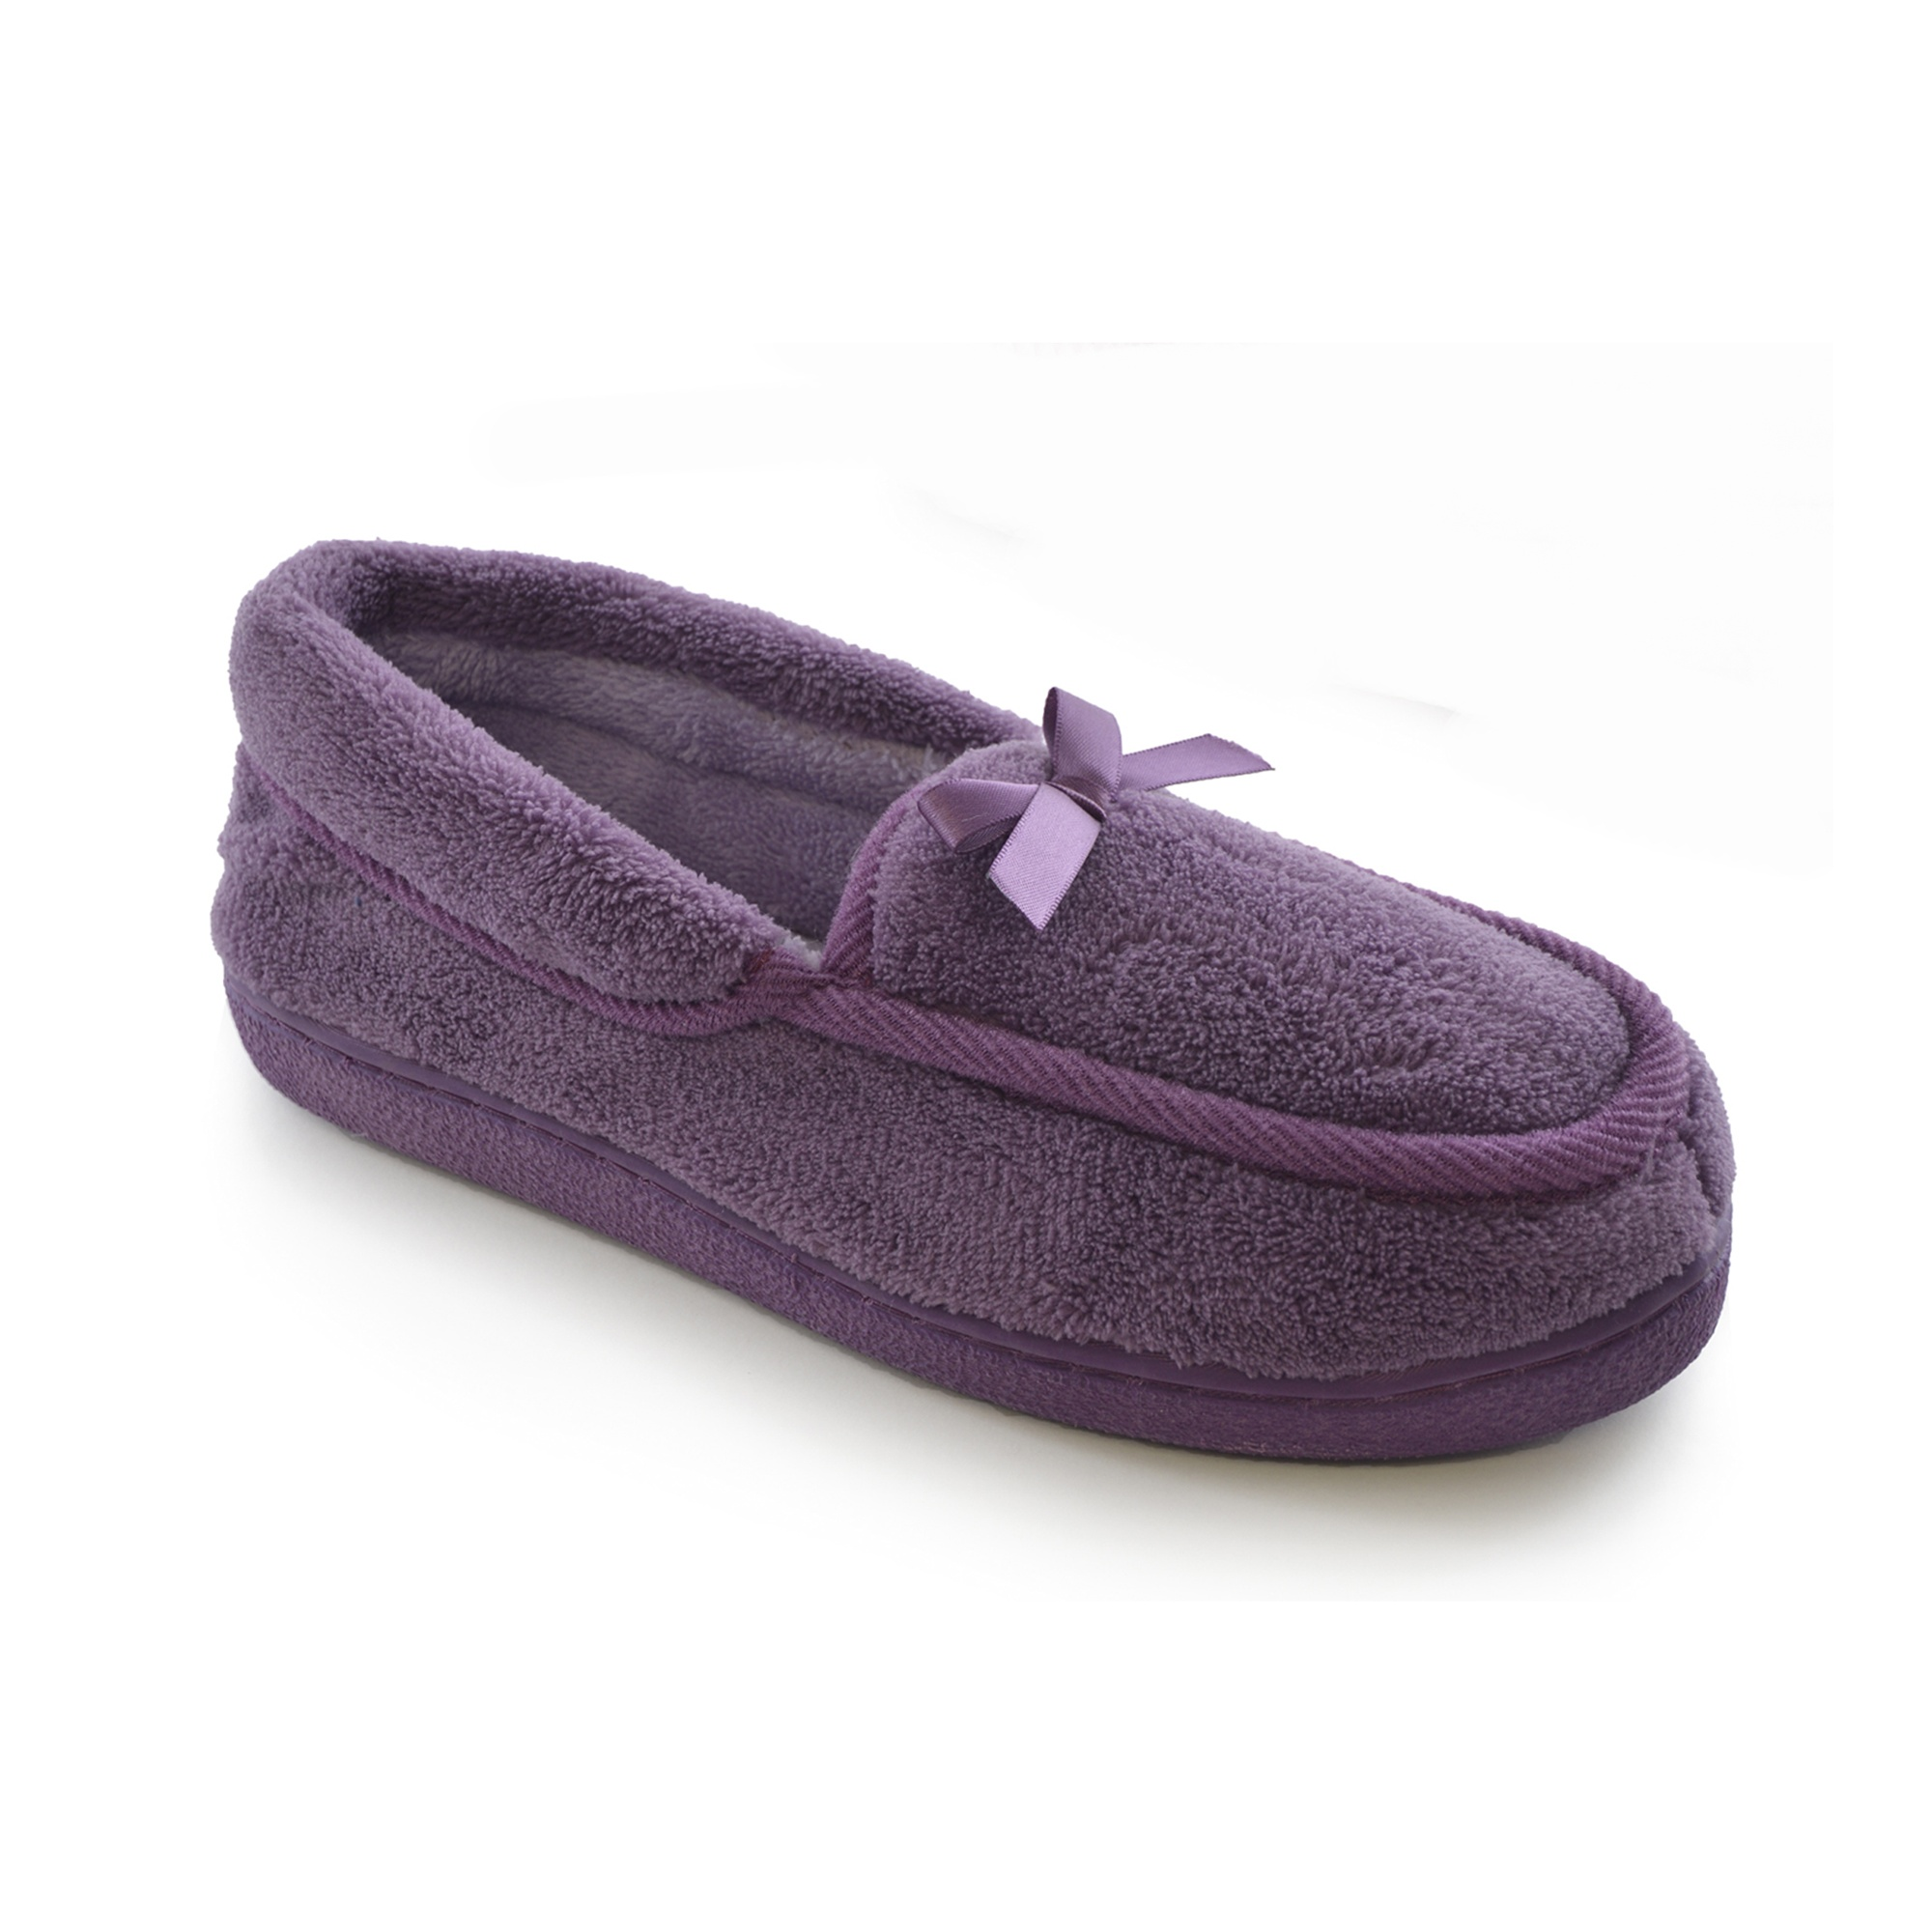 Womens/Ladies Terry Fleece Moccasin Loafer Indoor House Slippers /Slipper Shoes | EBay